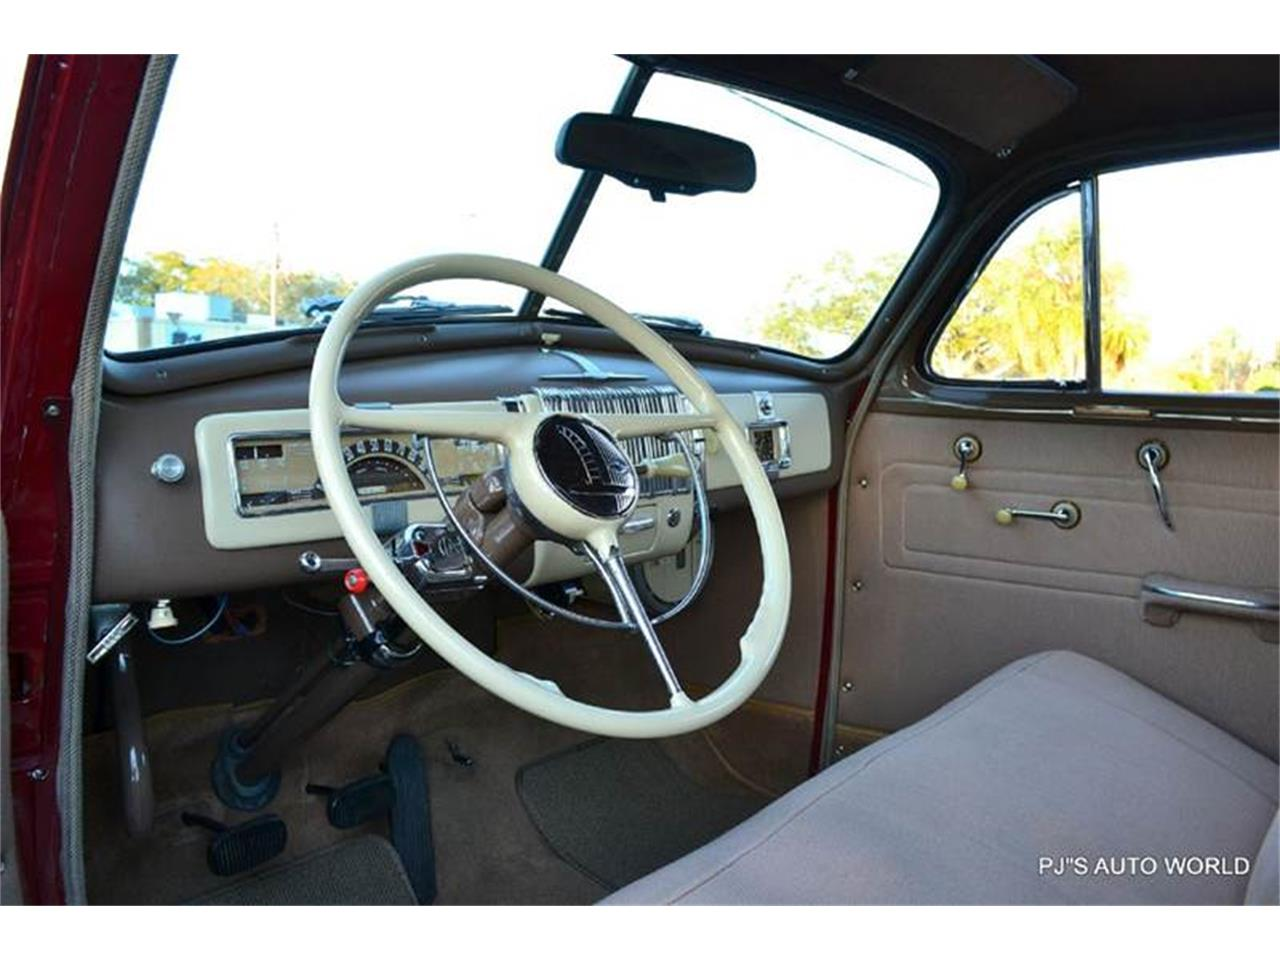 Large Picture of 1940 Chevrolet Super Deluxe - $27,900.00 Offered by PJ's Auto World - GLMM